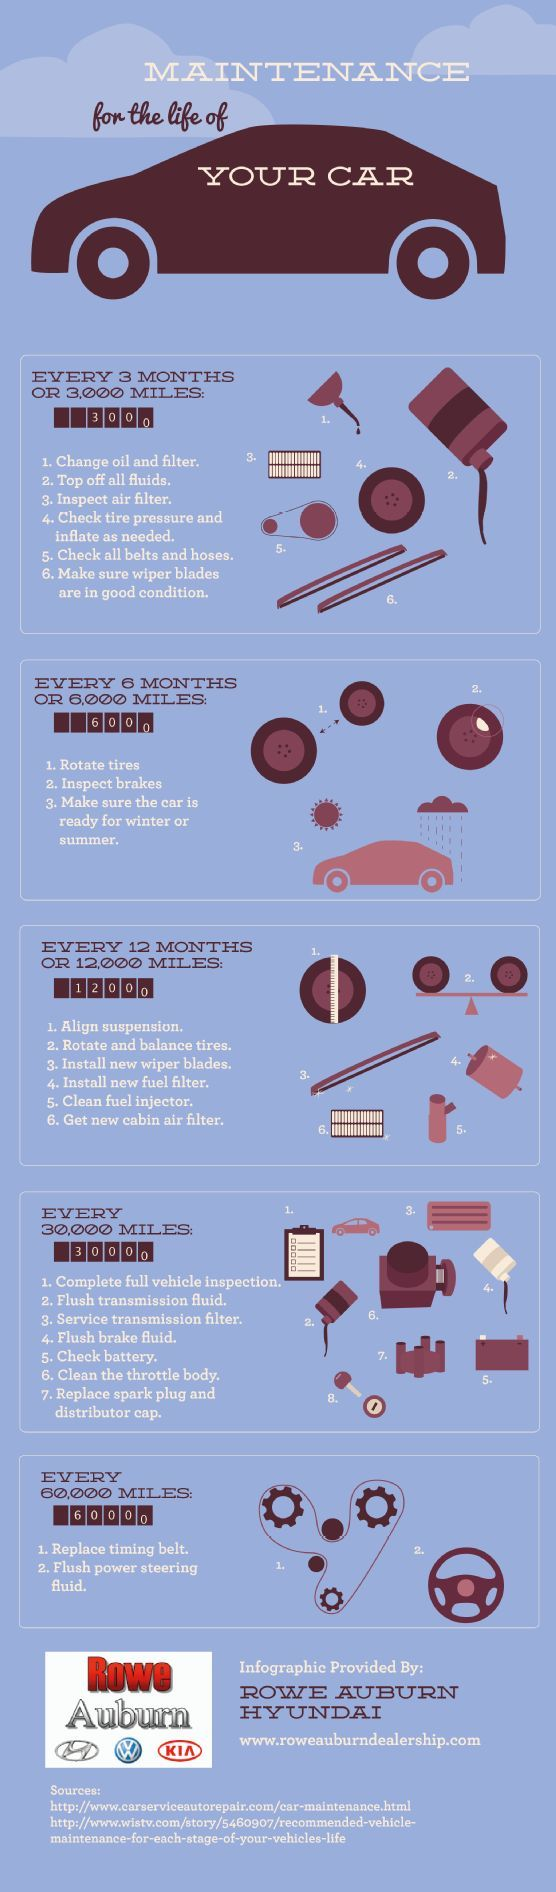 5 Tips For Your First Diy Car Repair With Images Car Facts